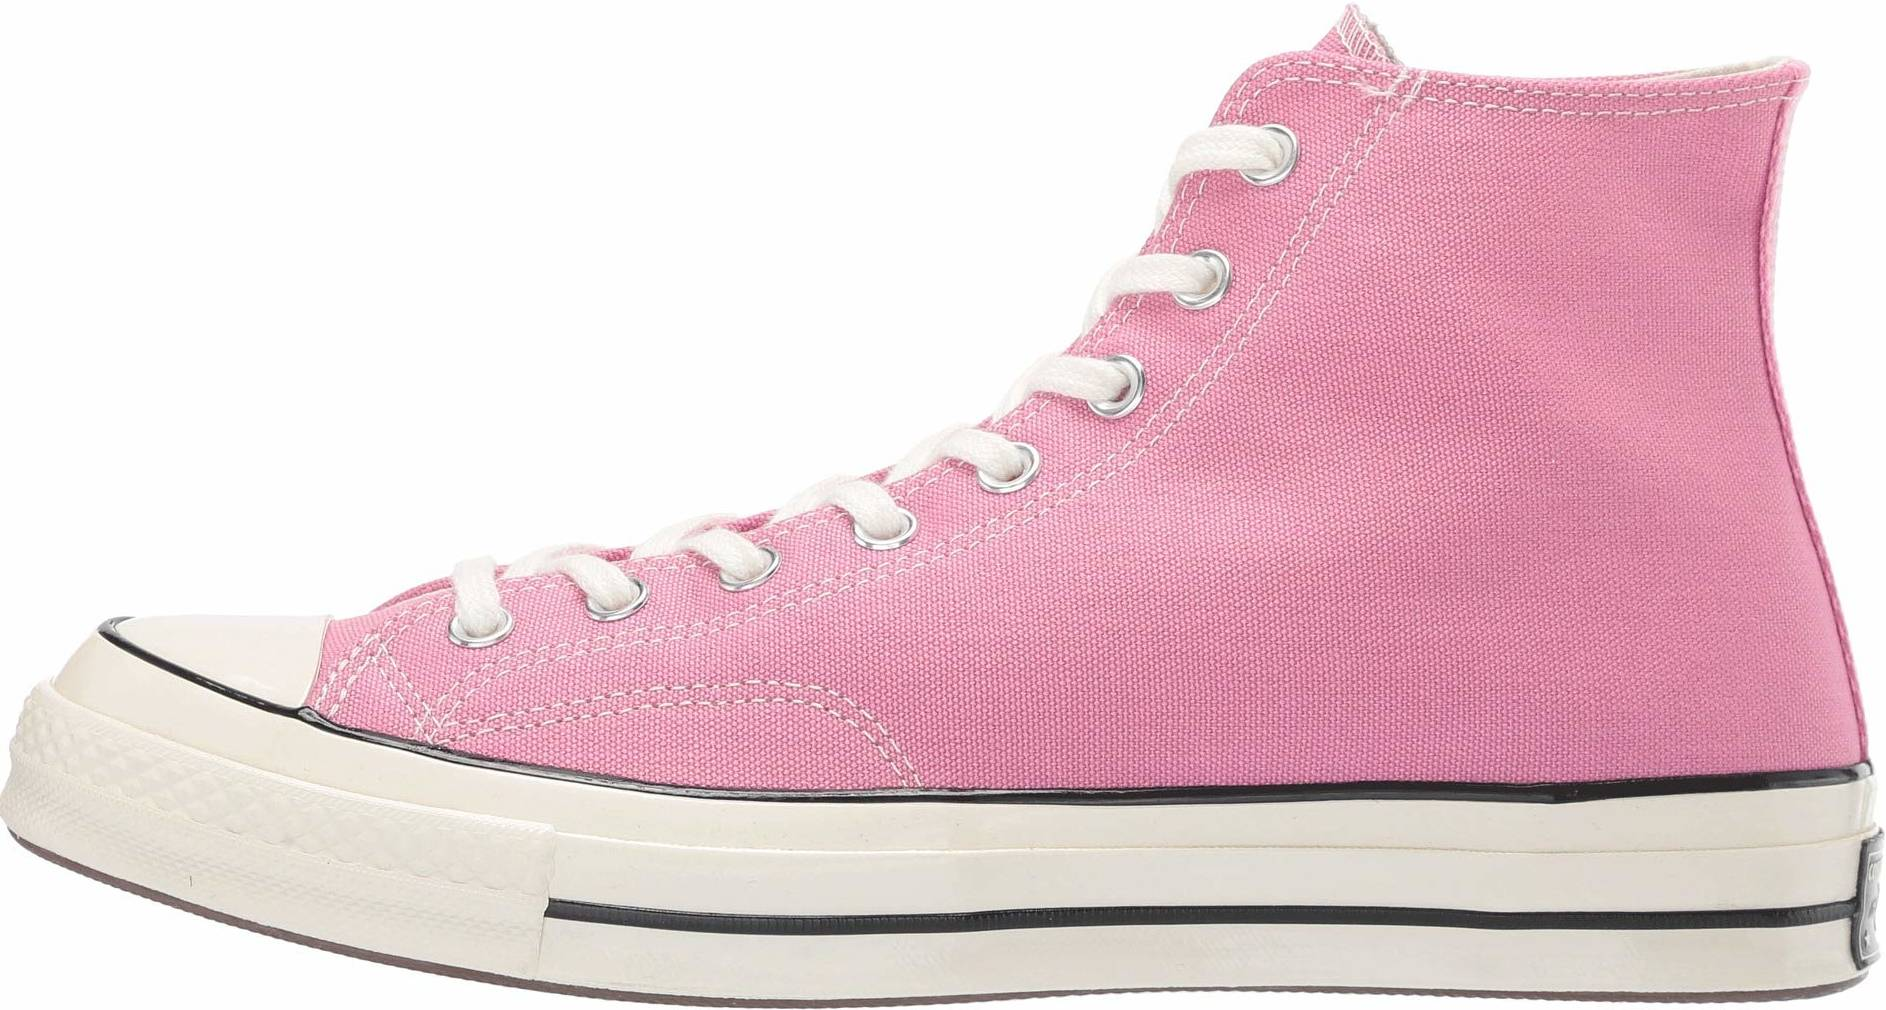 Save 39% on Pink Sneakers (108 Models